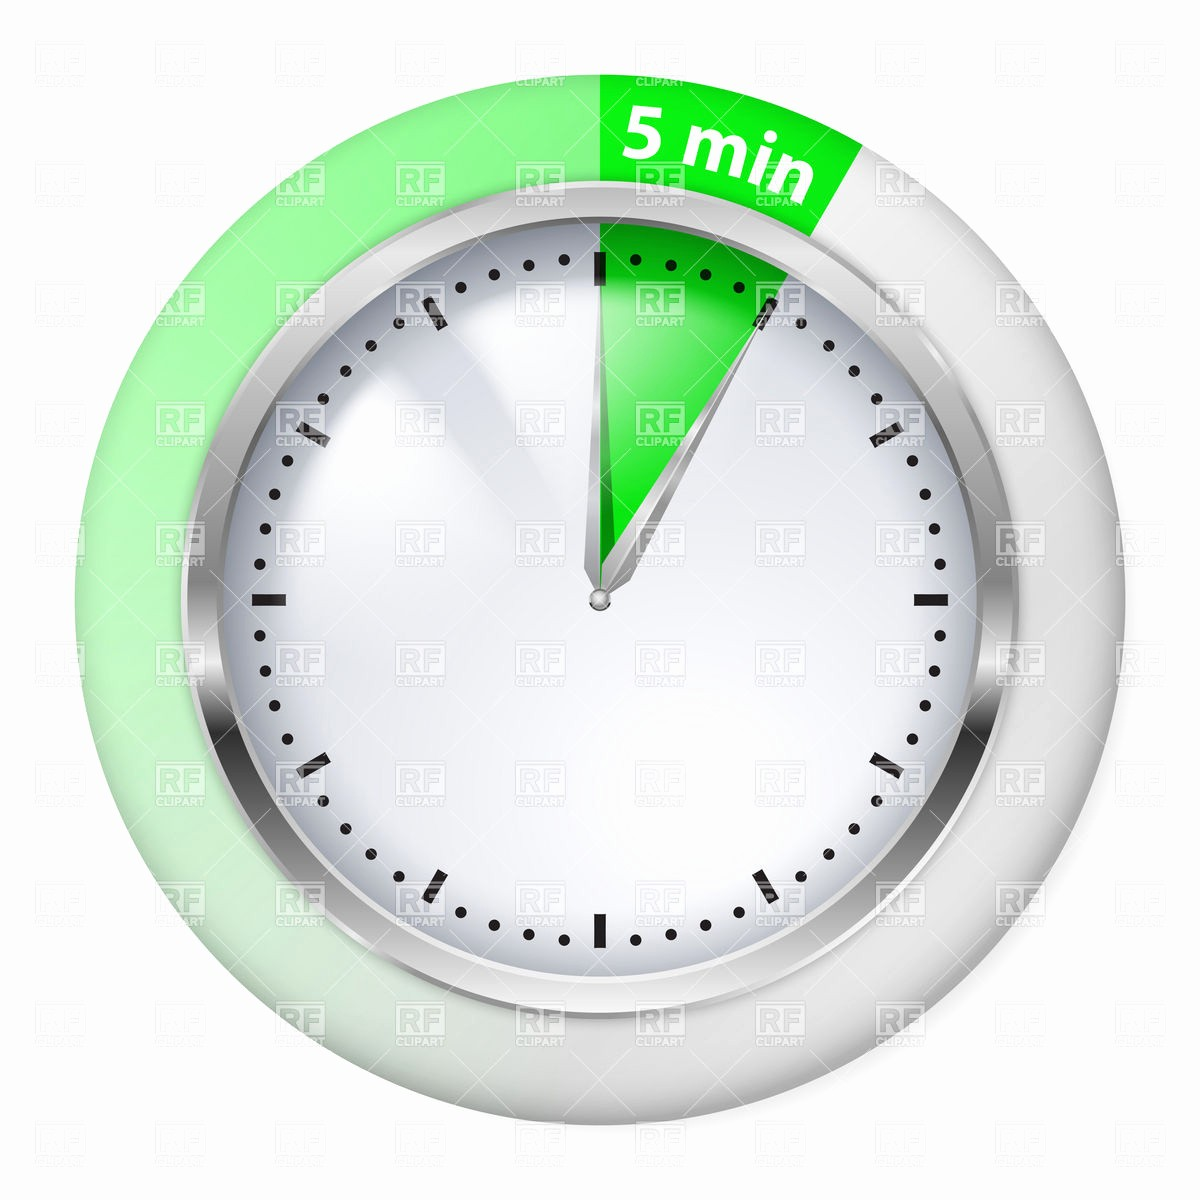 Set Stopwatch for 5 Minutes Elegant 10 Minute Stopwatch Clipart Clipart Suggest